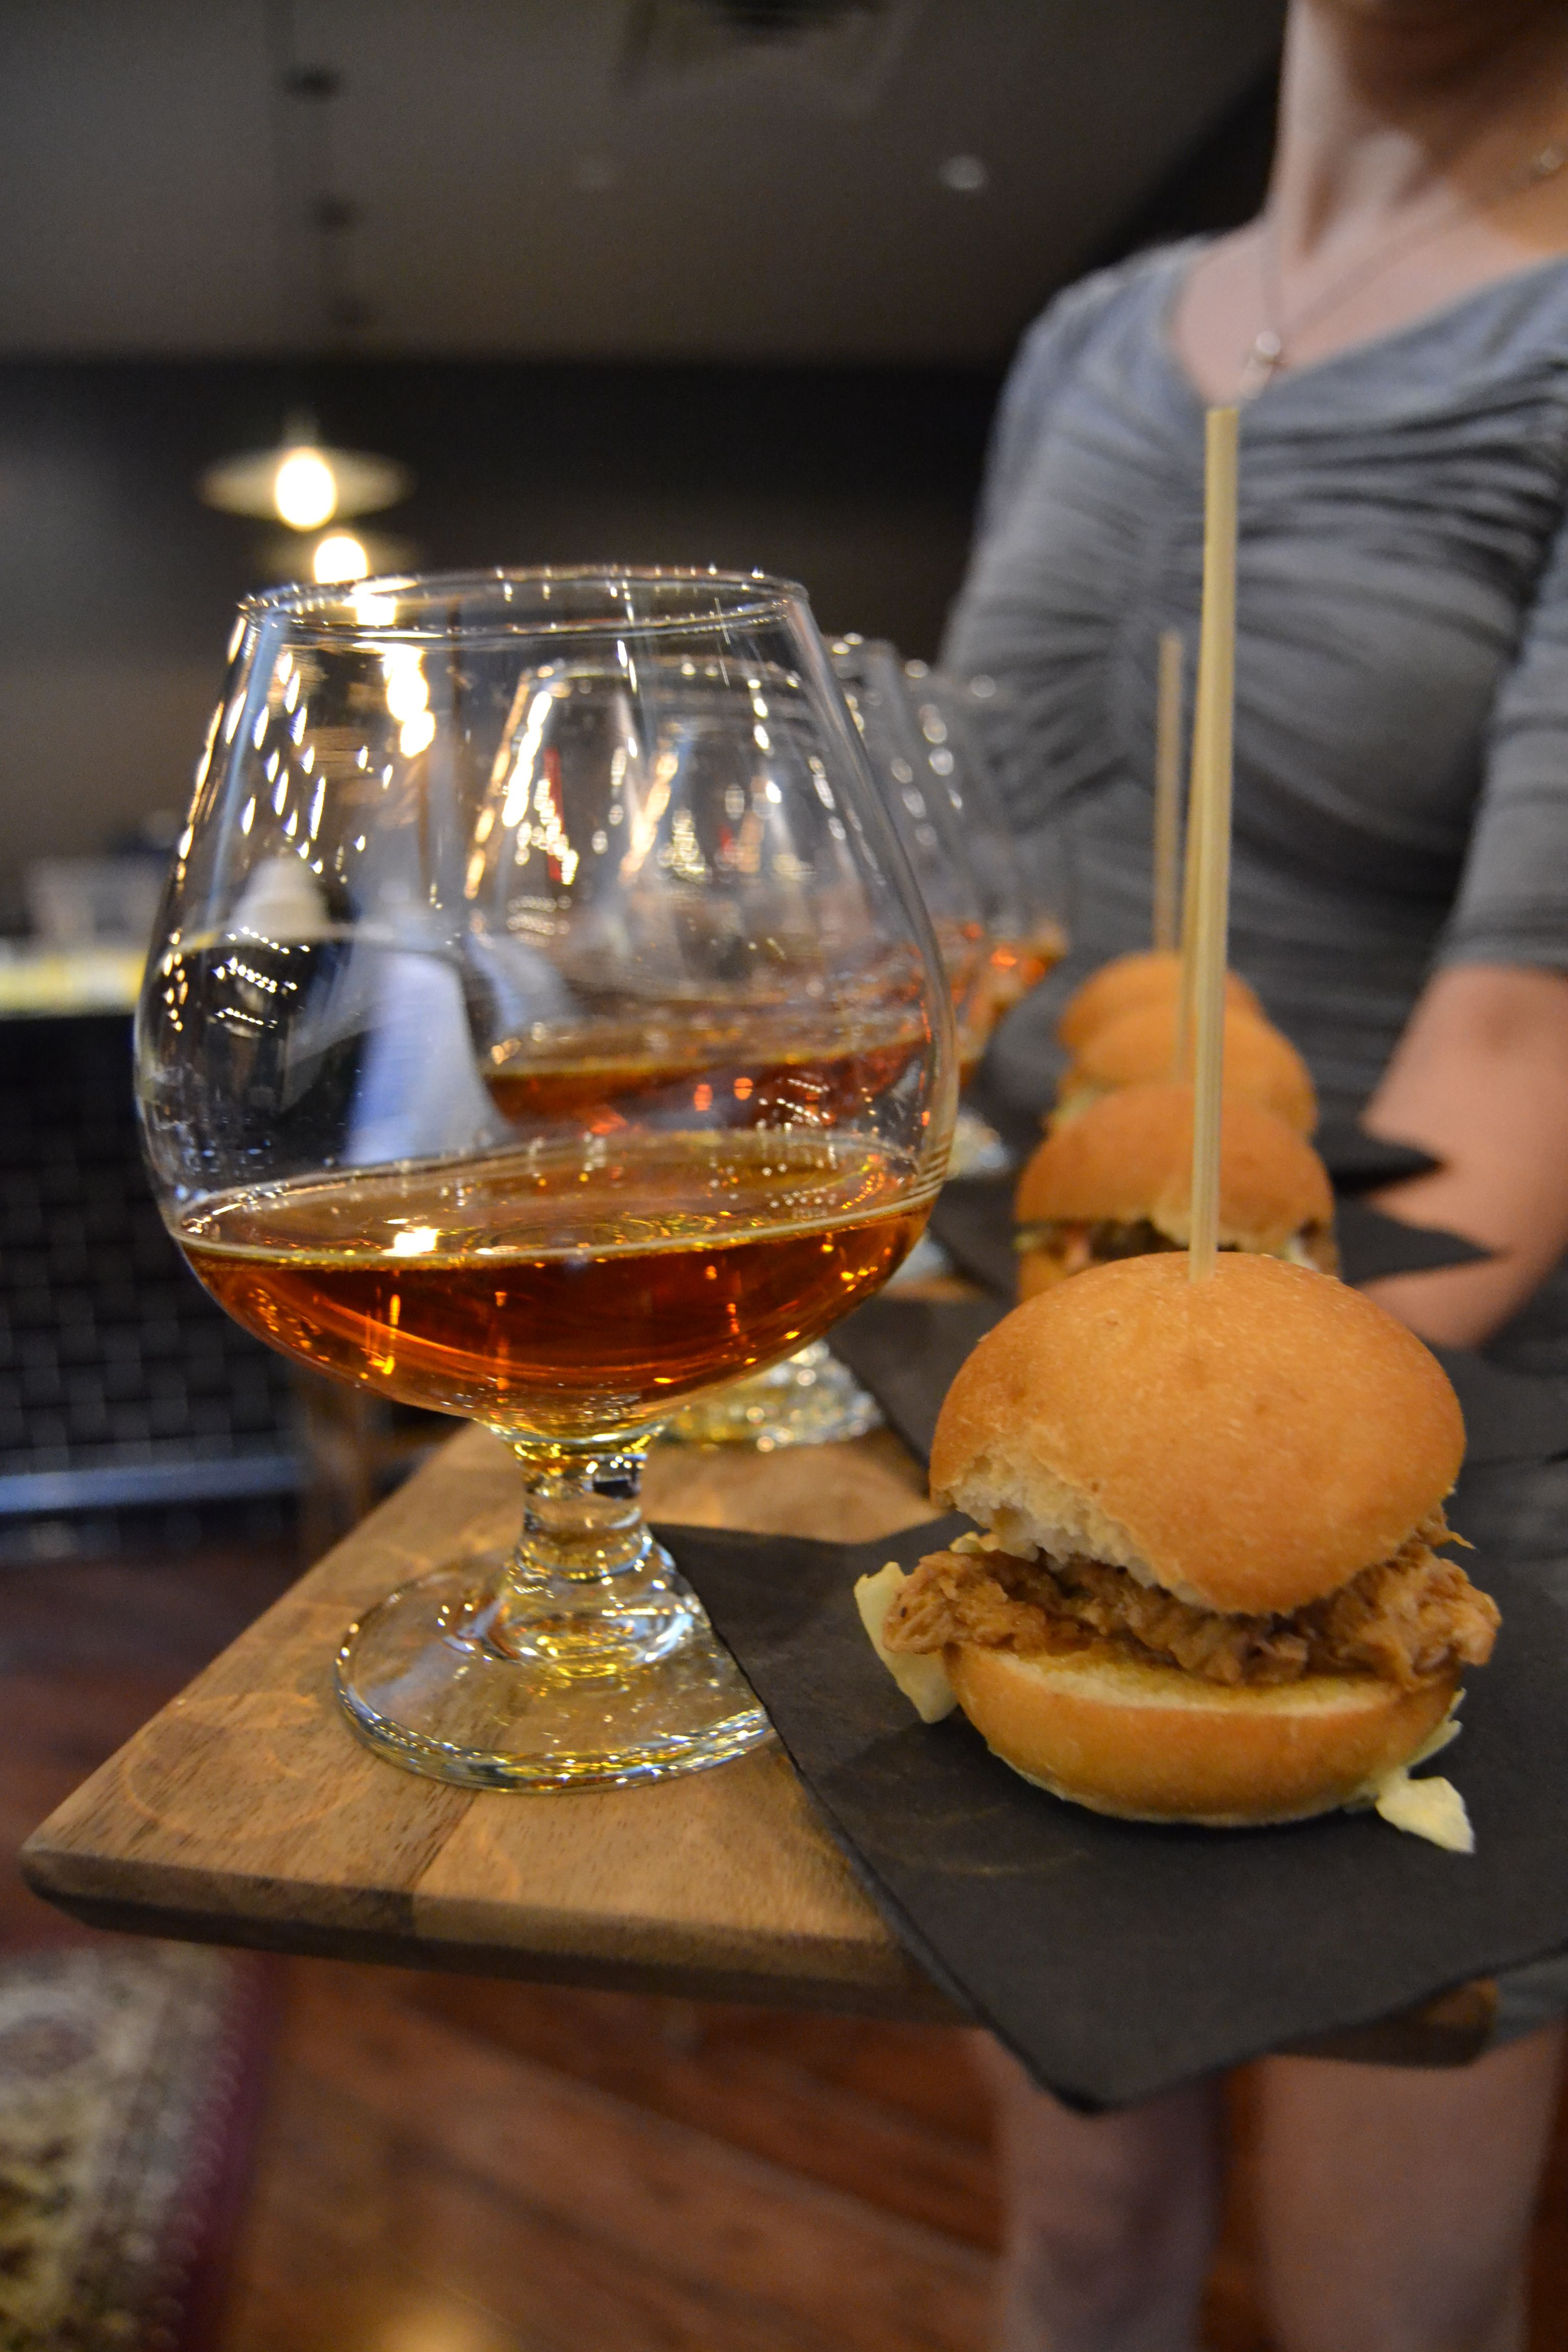 Beer and pulled pork sliders - MStreet Catering and Events, Nashville, TN